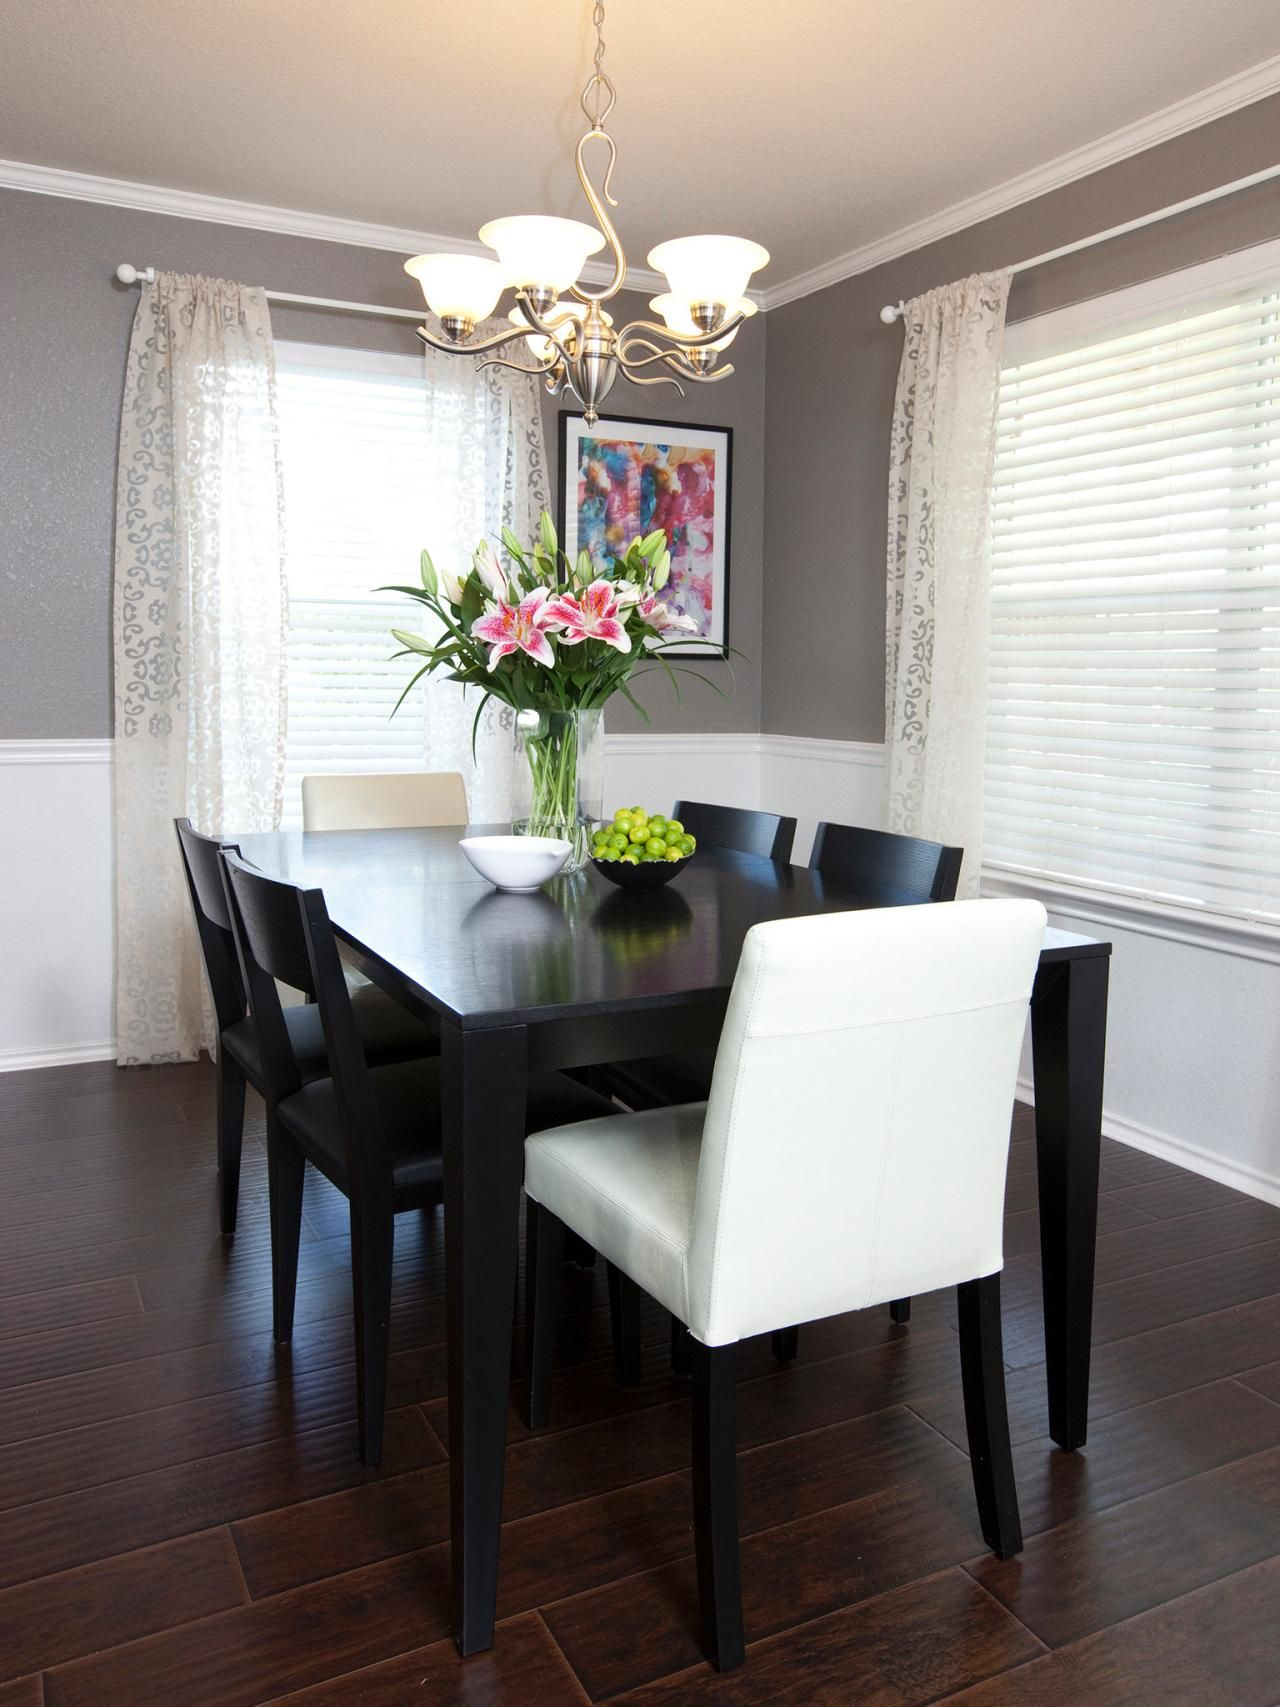 chair rail molding divides two toned walls in this neutral dining room sheer curtains - Colorful Modern Dining Room